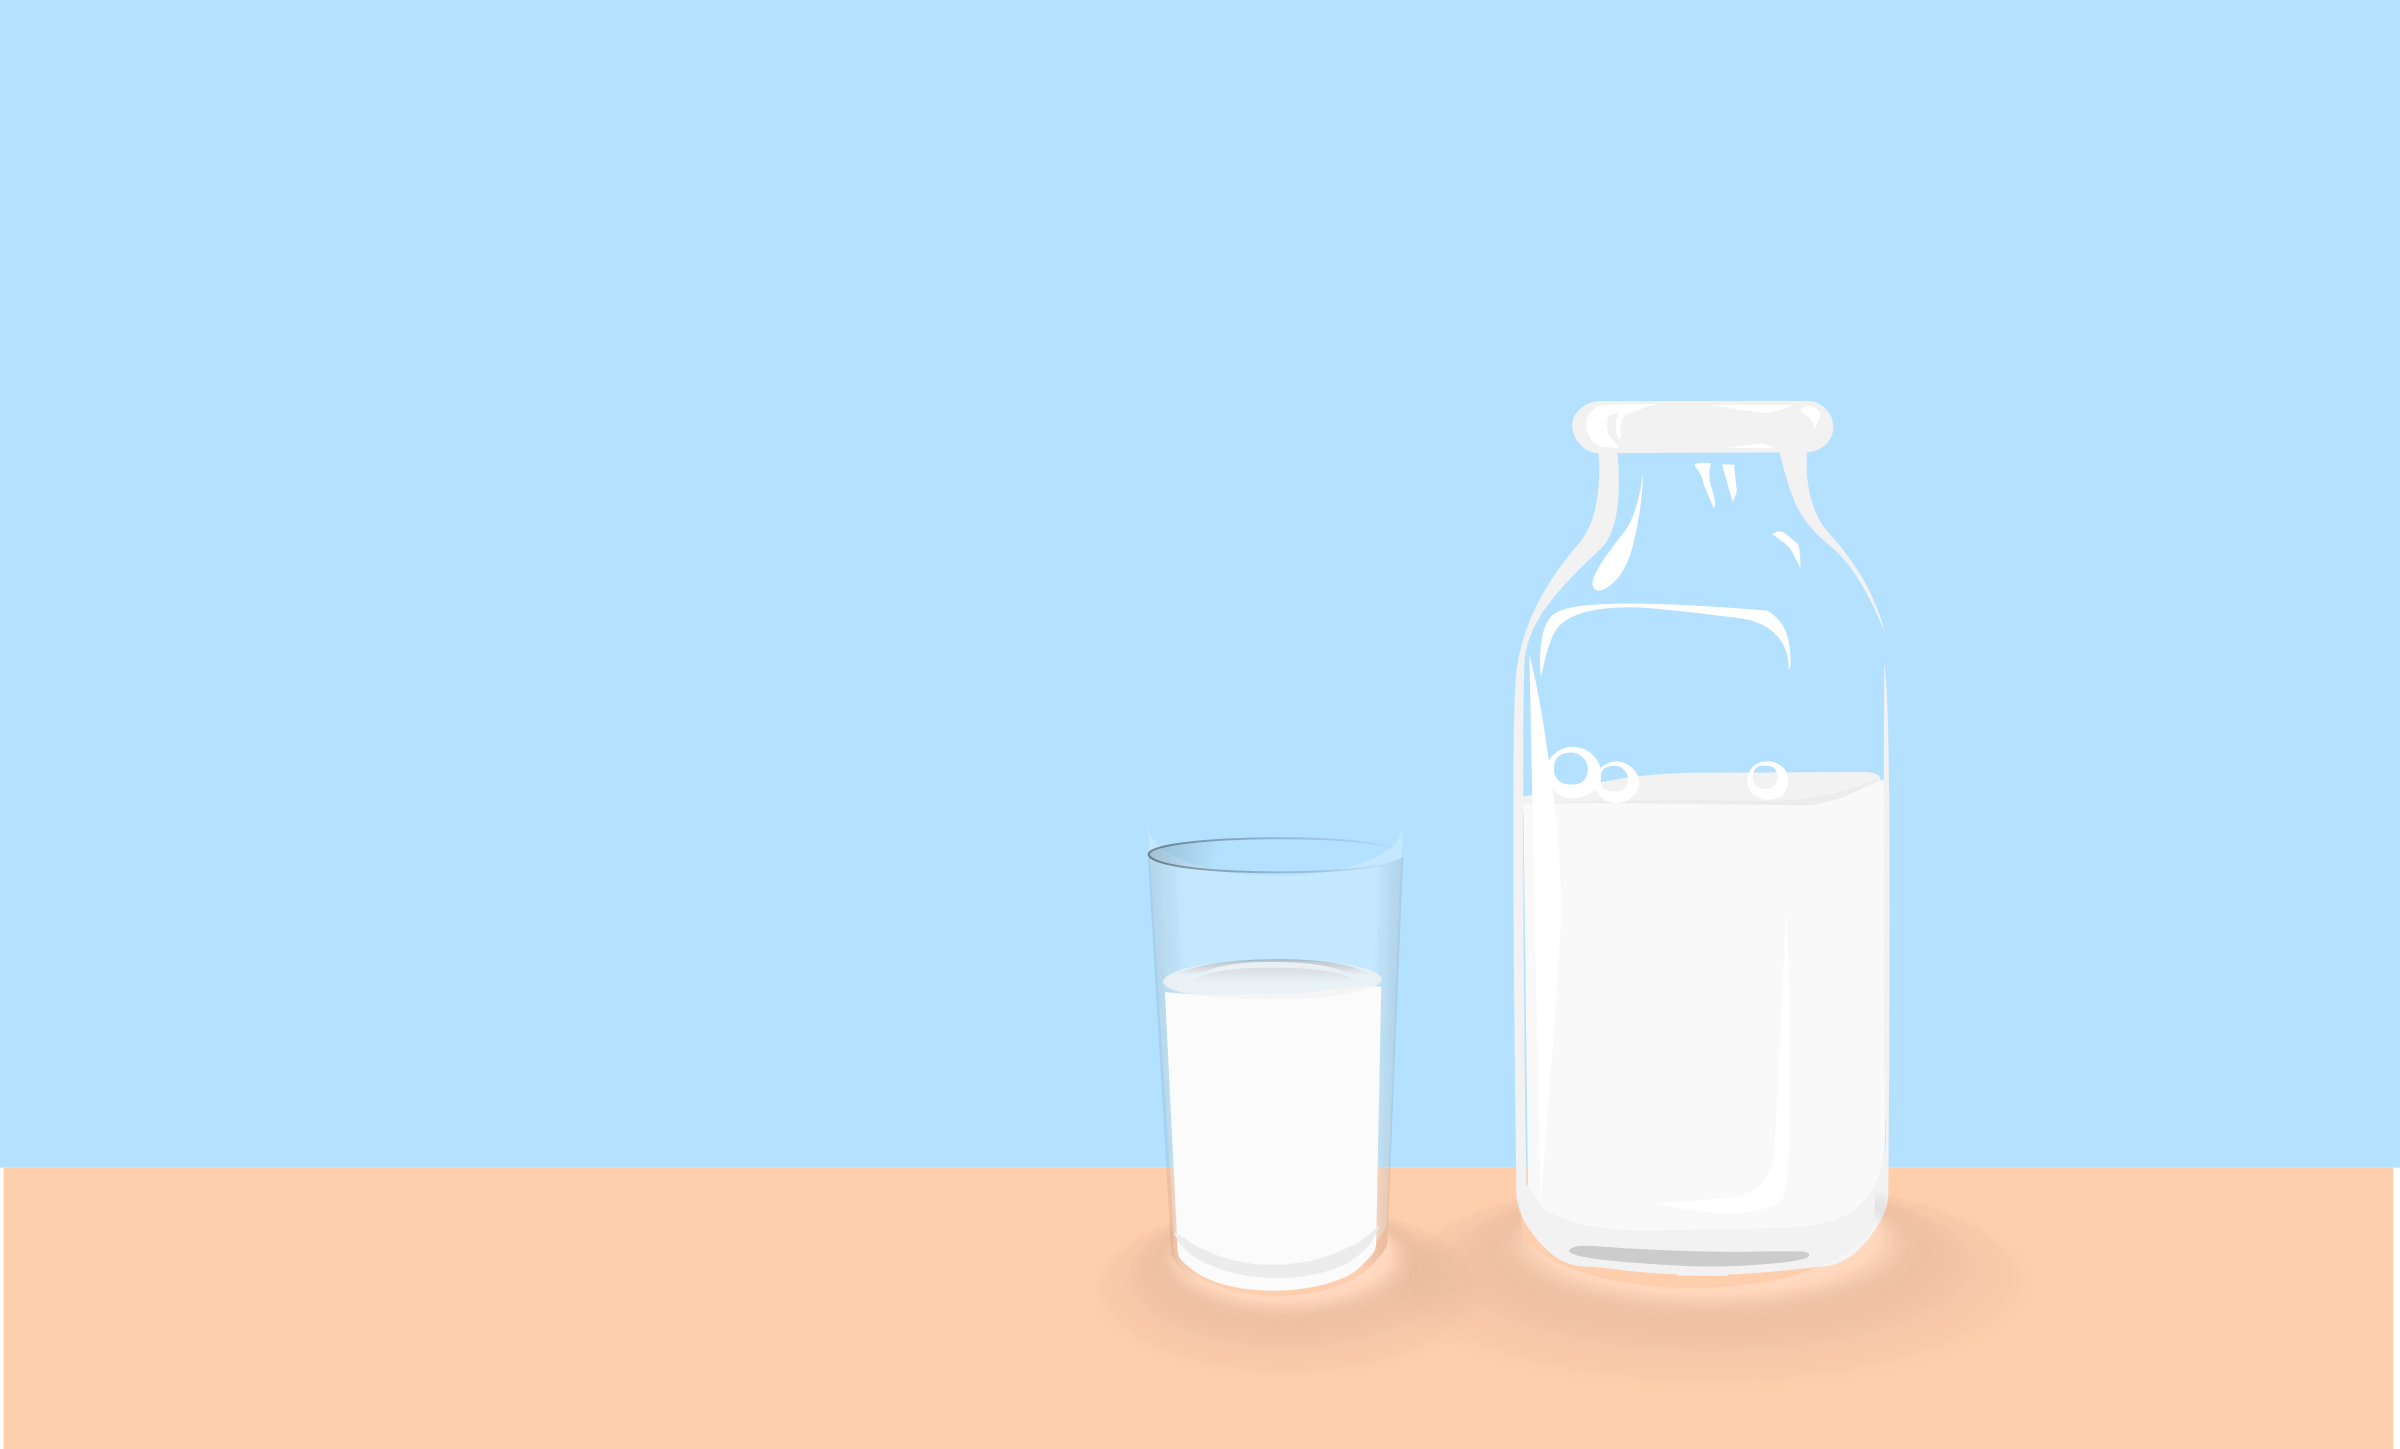 Bottle of milk and glass of milk on table by ElodieVentura